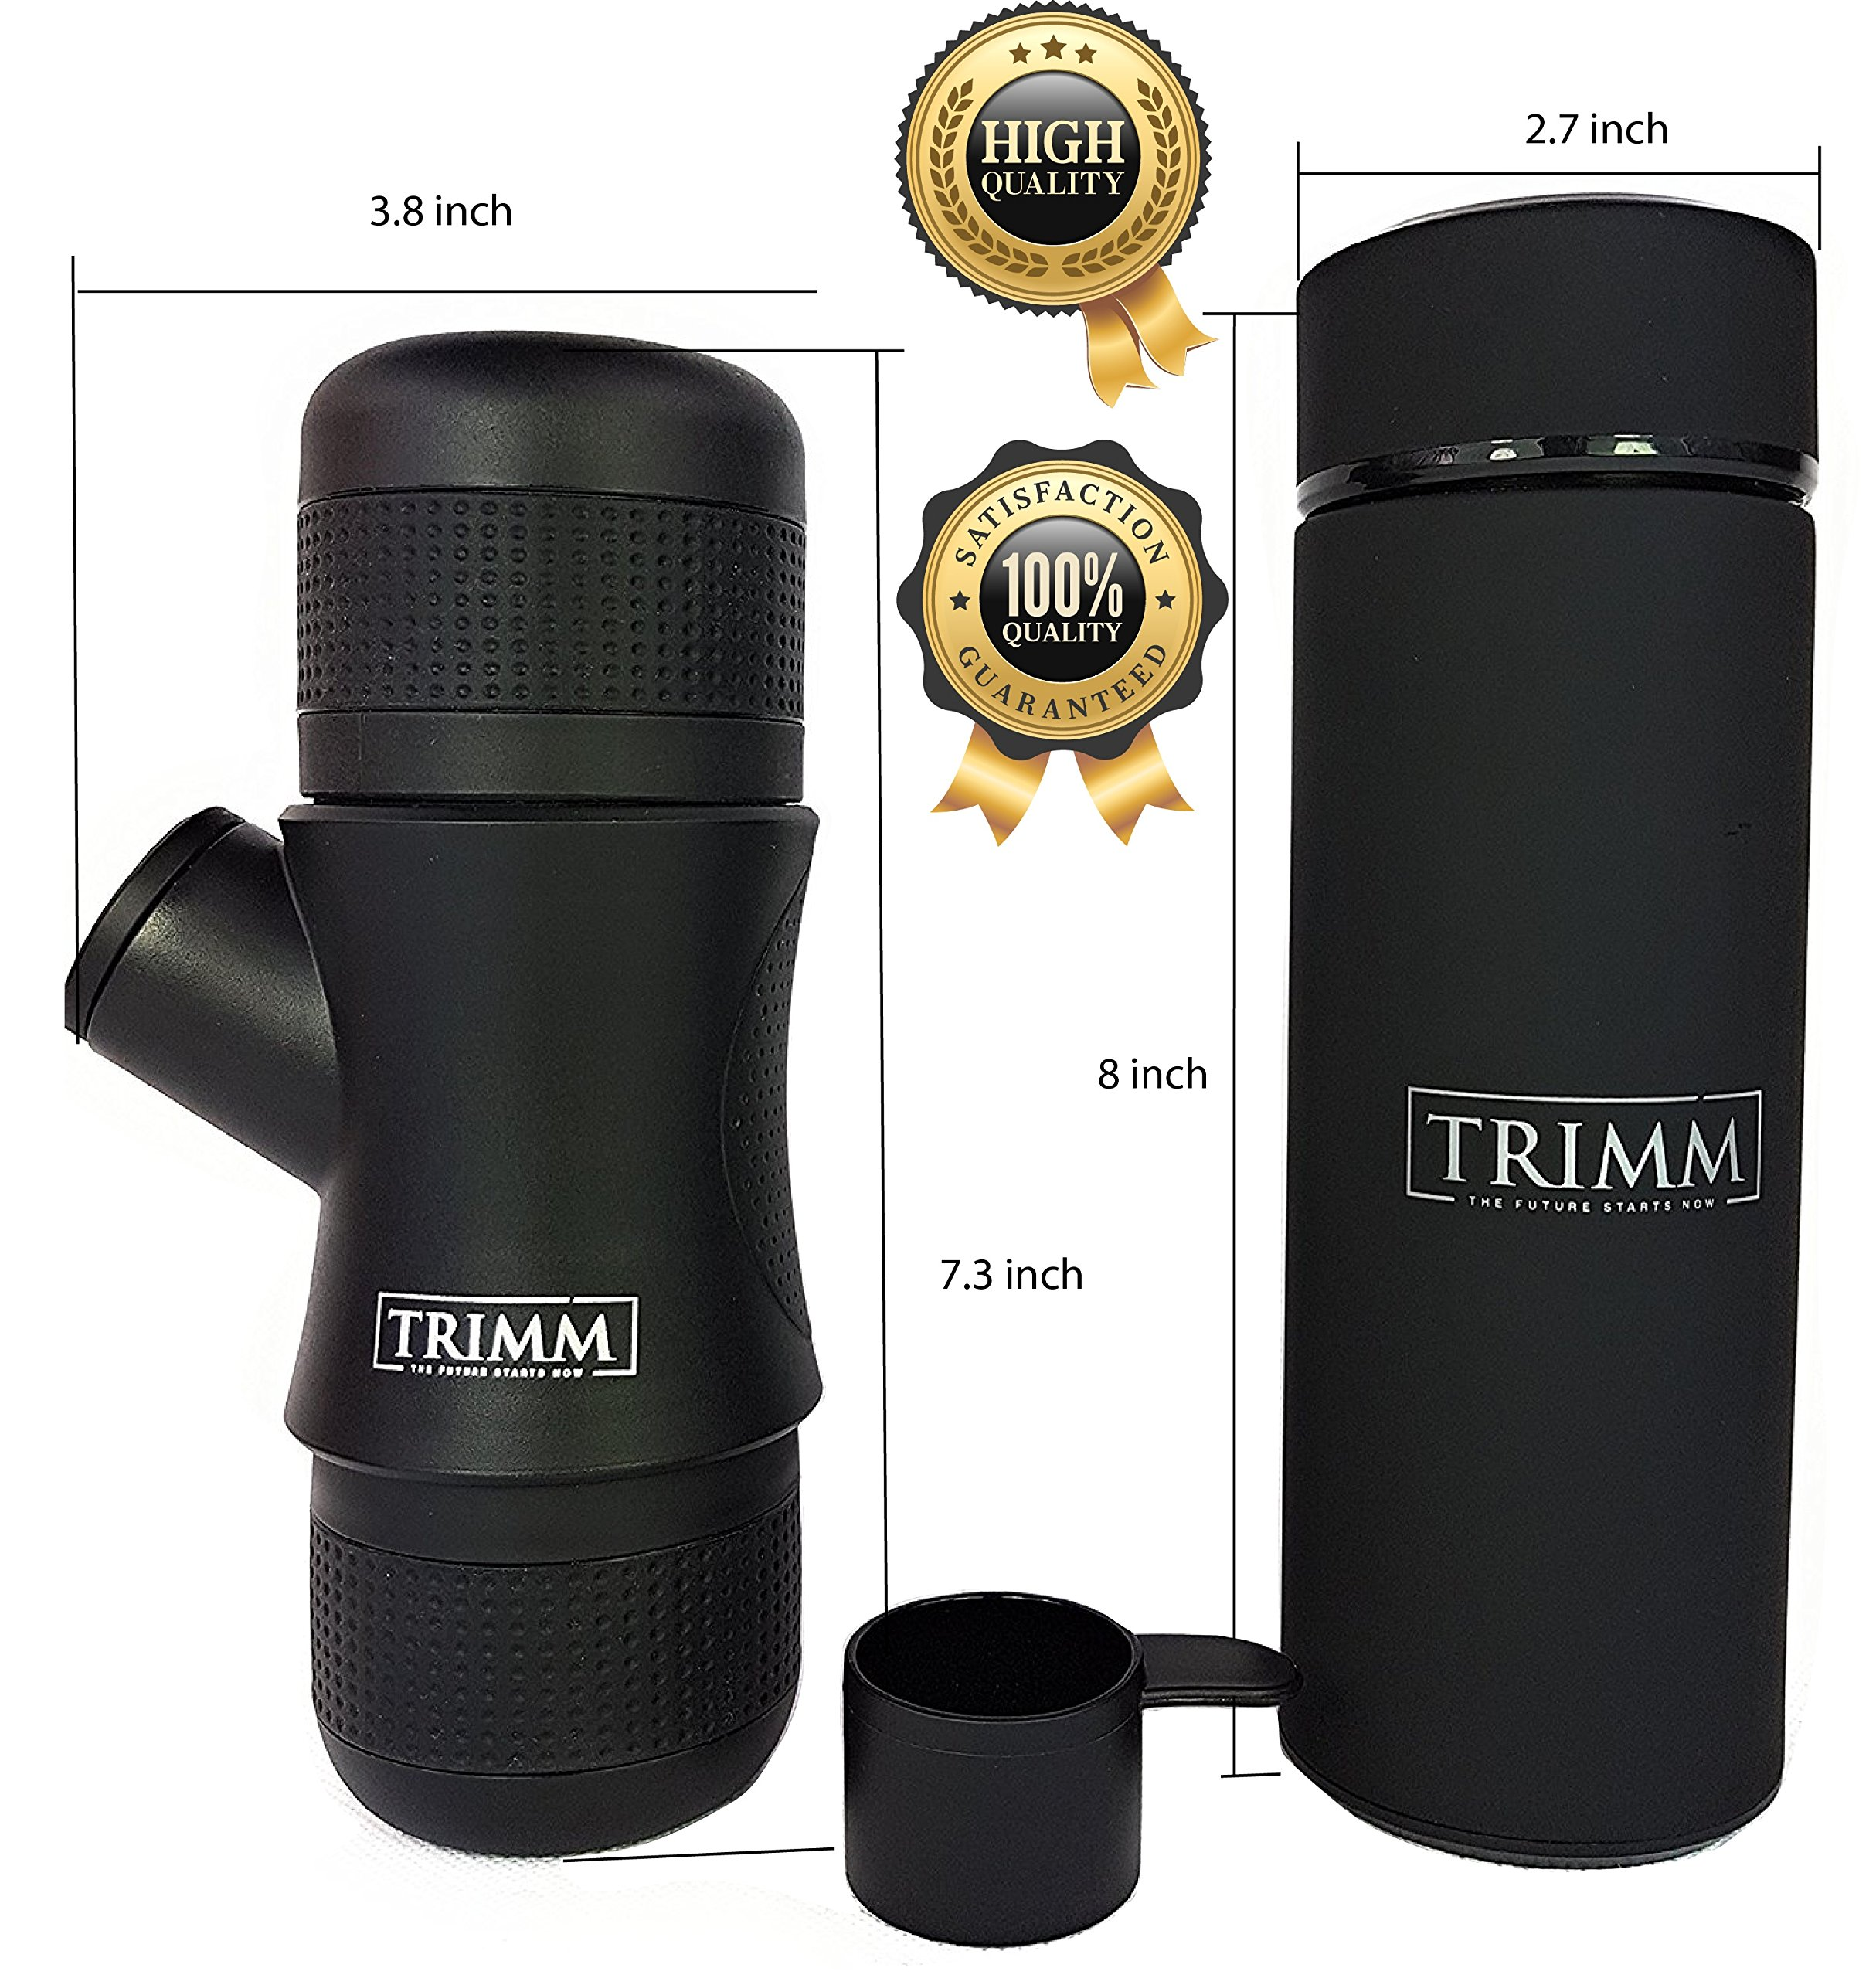 Trimm Portable Hand Held Espresso Machine and Thermos Vacuum Insulated Double Wall | Portable Espresso Maker and Flask | Single Cup Coffee Maker and Tea Thermos Bottle | Travel Set Great Gift Idea by TRIMM THE FUTURE STARTS NOW (Image #2)